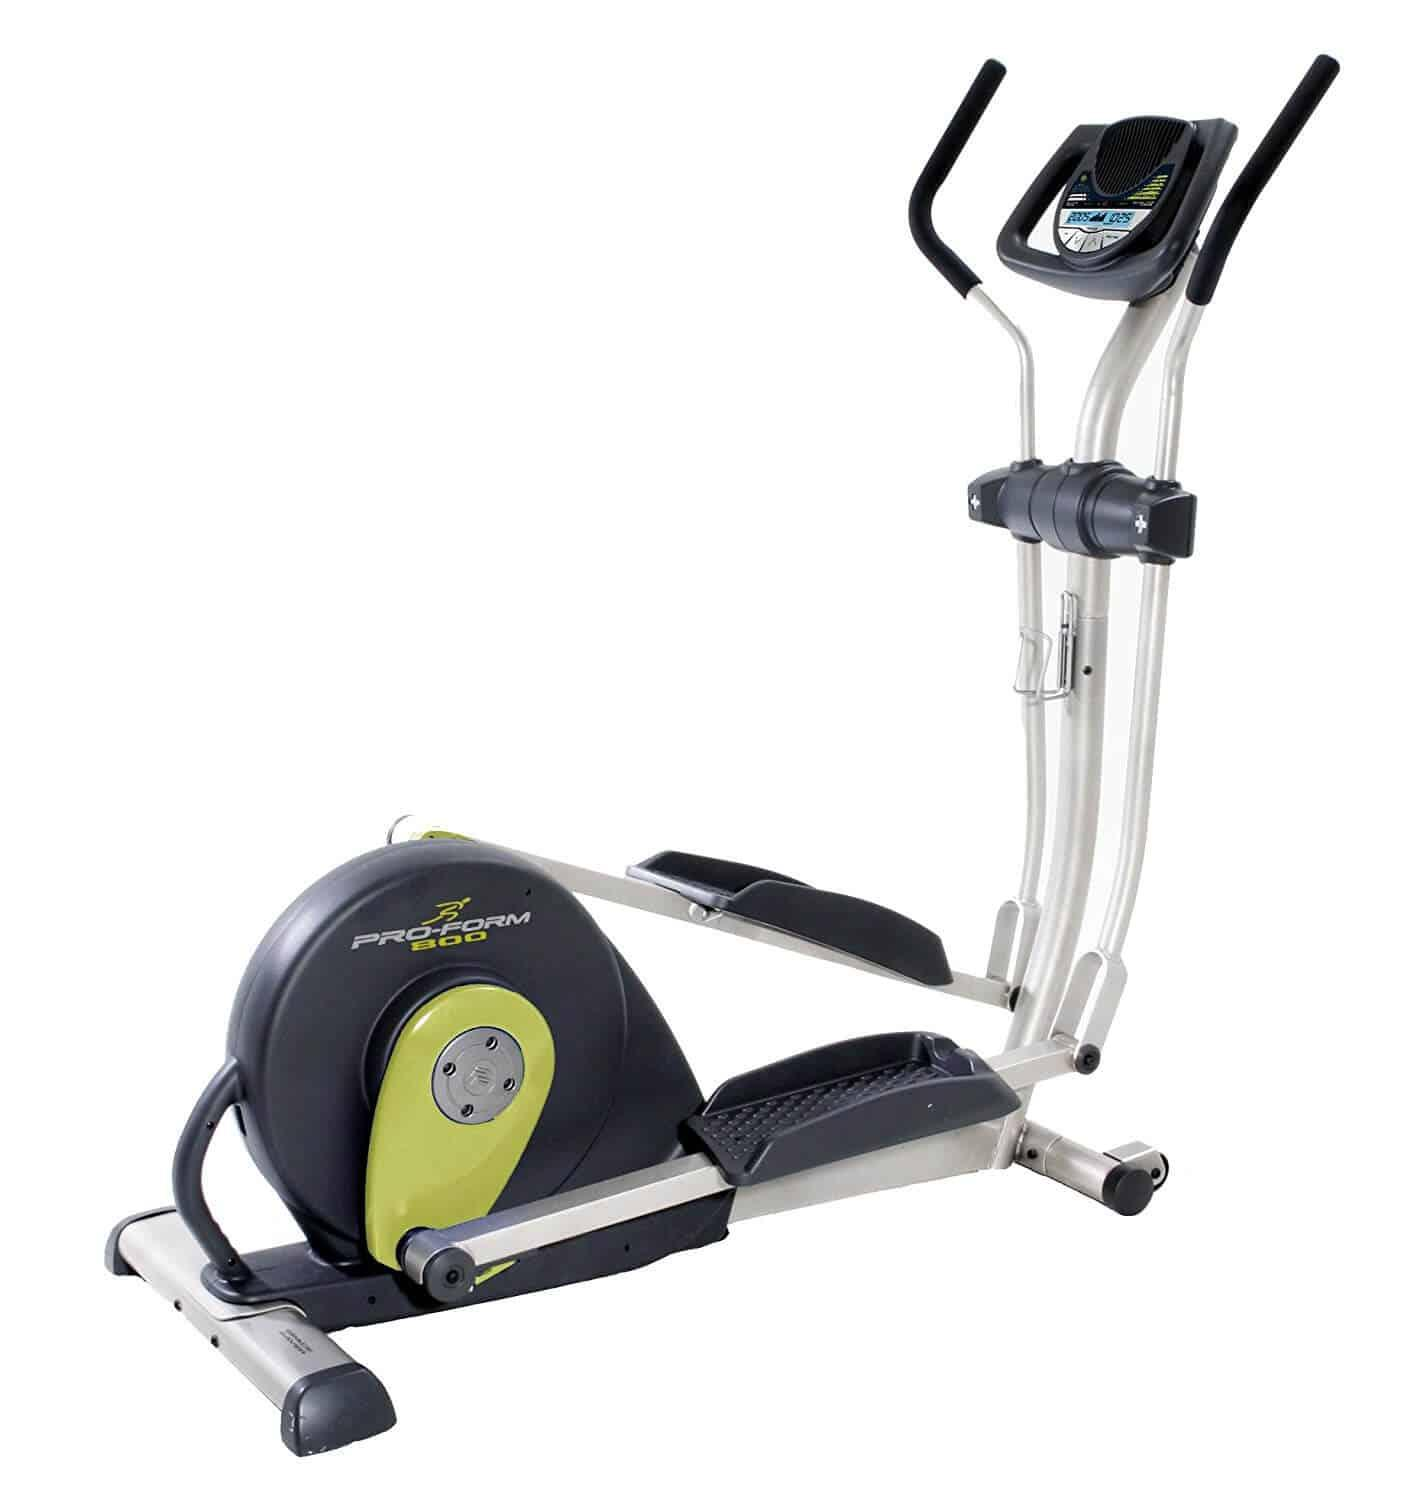 Proform 850 Elliptical